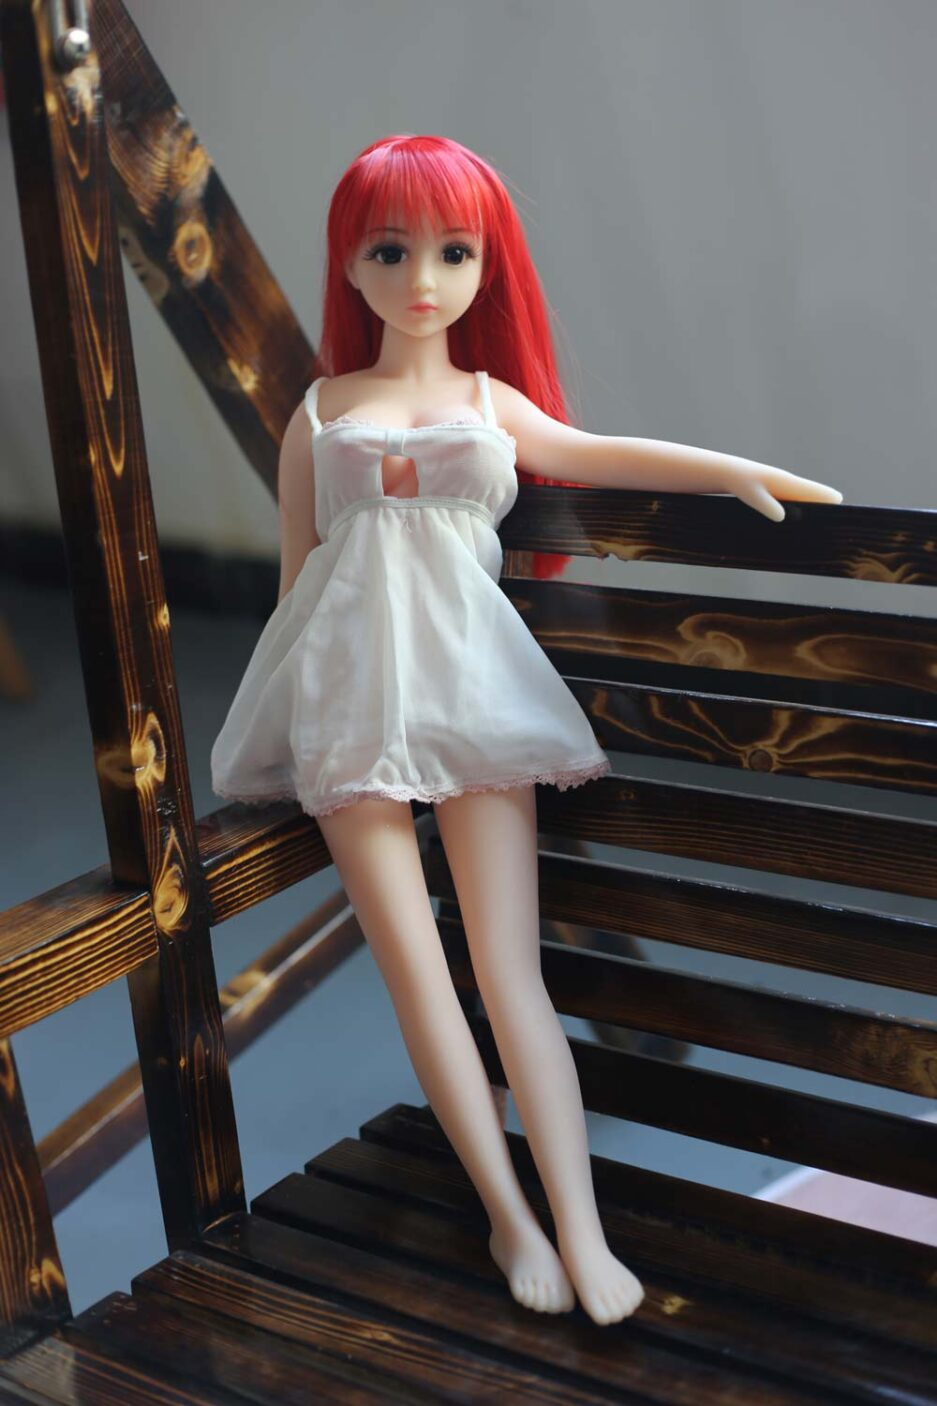 Mini sex doll with red long hair standing on a chair